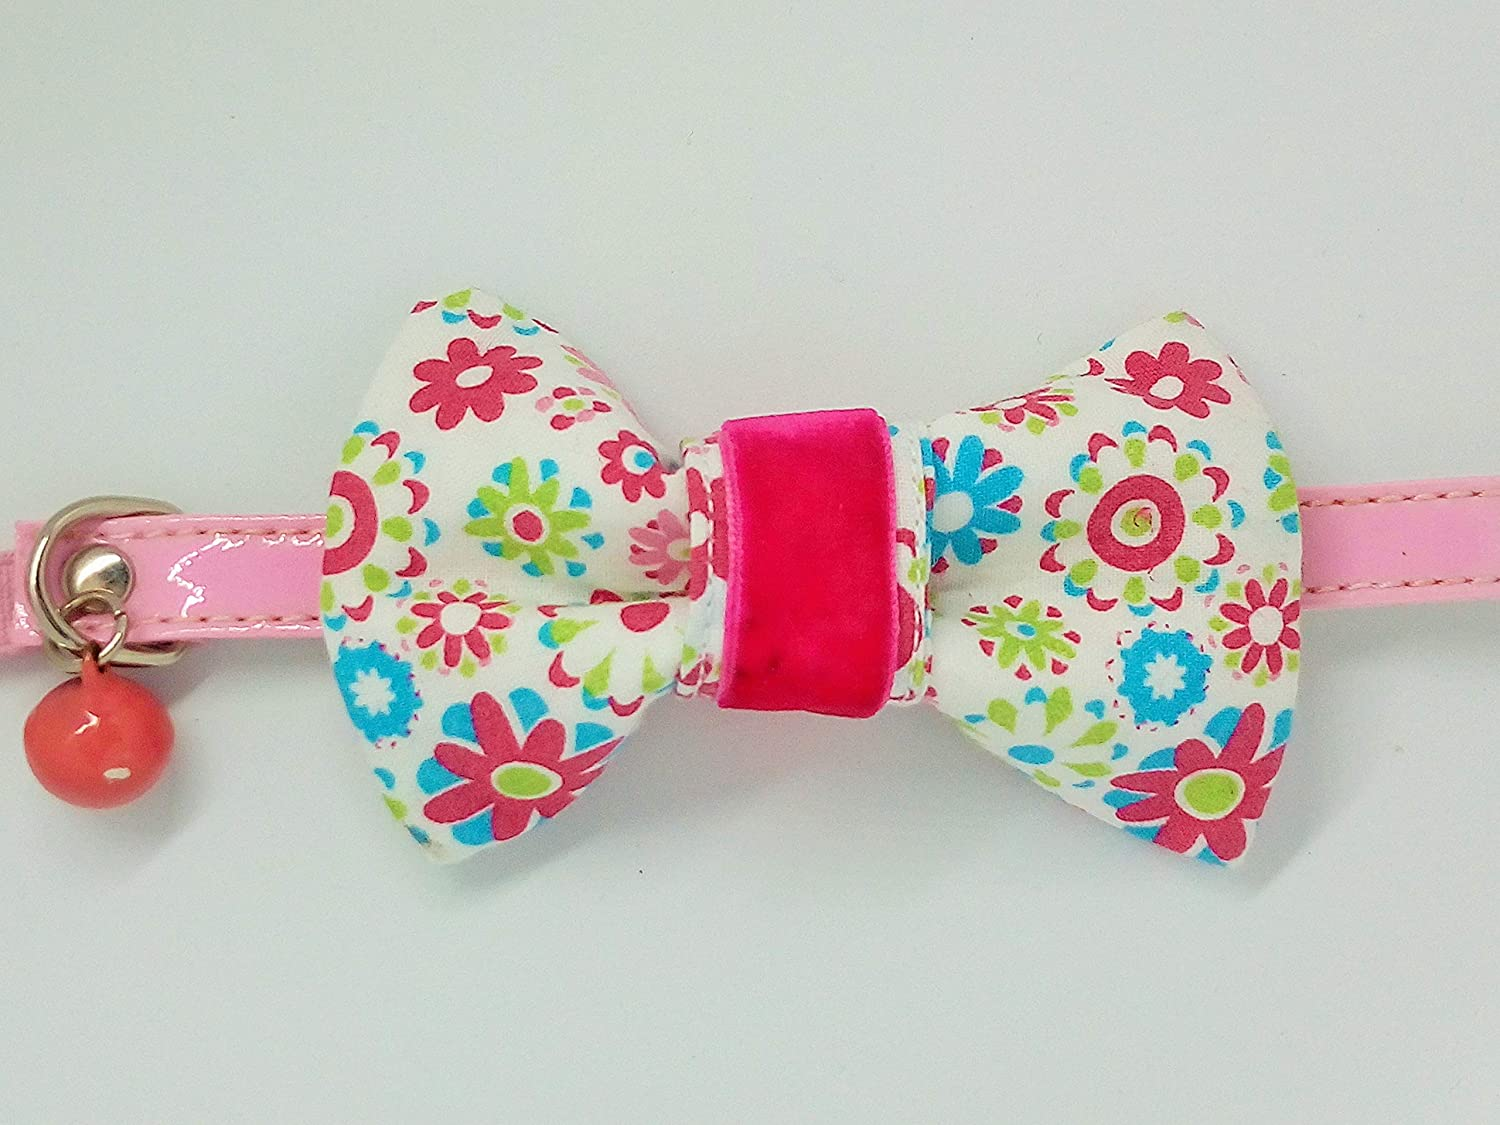 LINDA POMS 2 Girl Bow Tie for Dogs Collar Floral Cat Attachment Small Pink Bowtie Puppies Decorative Neckties Slides Accessories Charms Grooming Costumes Cotton